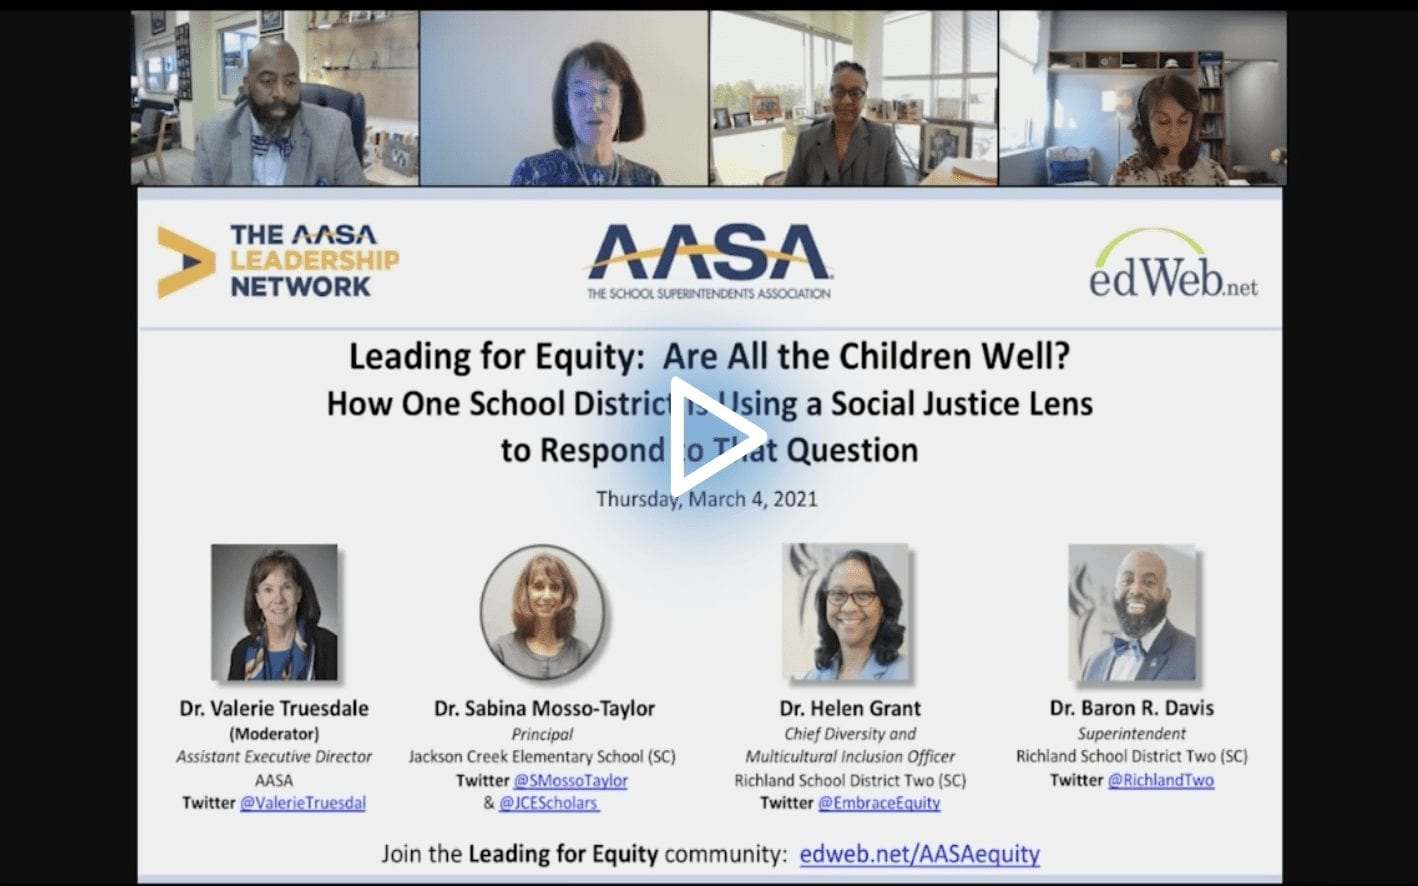 Leading for Equity: Are All the Children Well? How One School District Is Using a Social Justice Lens to Respond to That Question edWebinar recording link